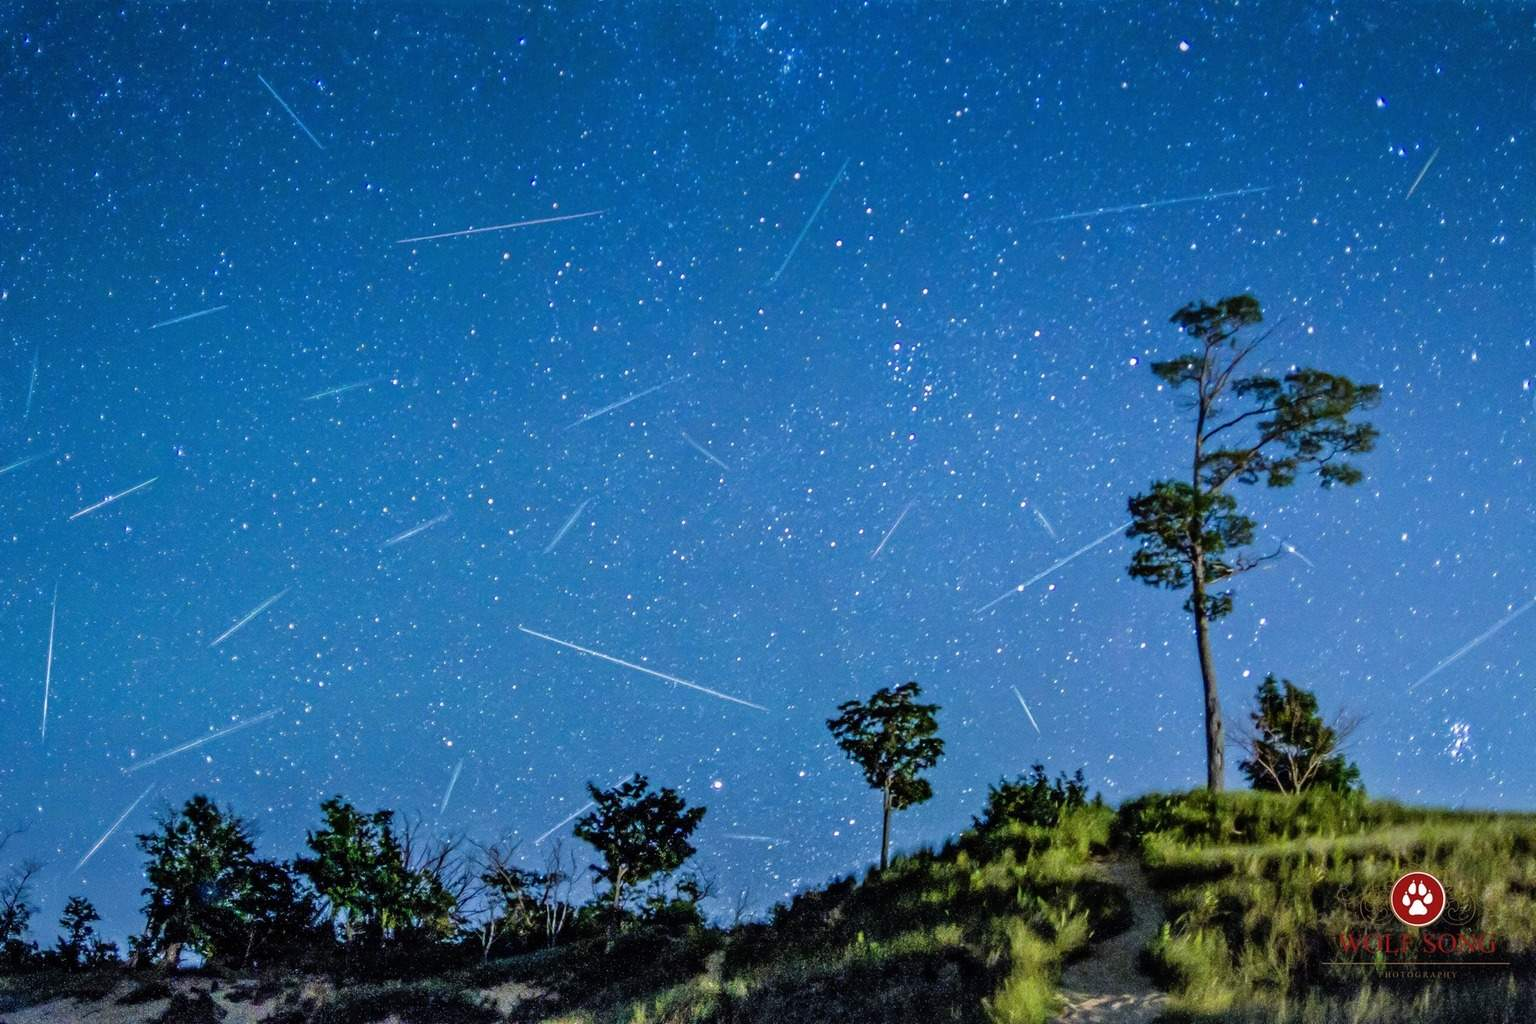 Hey everyone! Here is a shot of the perseid meteors from 8/12/15 in Michigan!